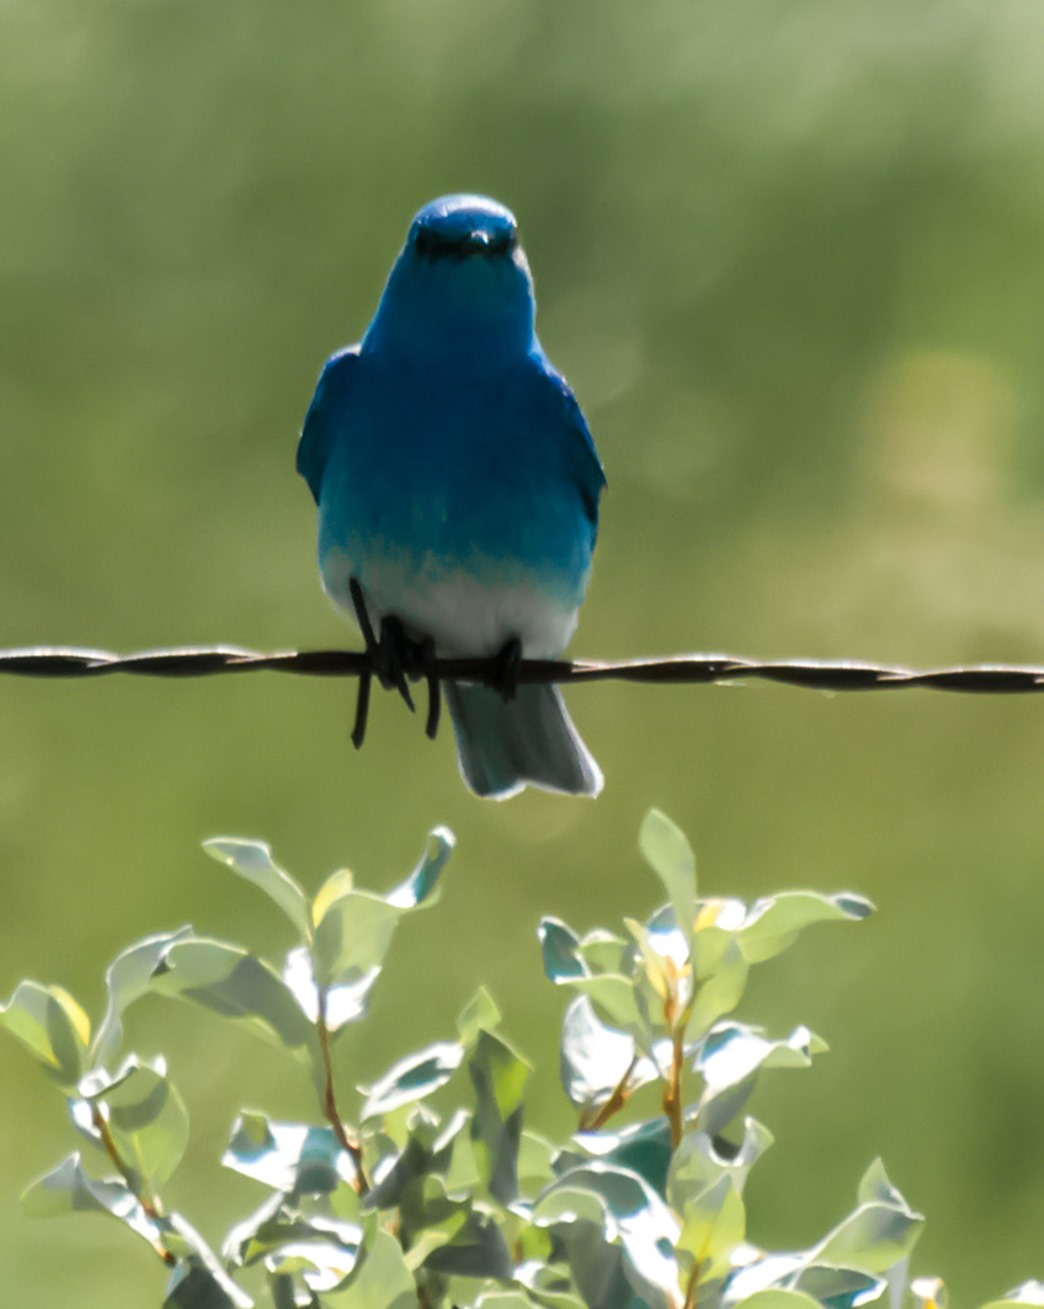 Mountain Bluebird found in the Southwestern Corner of Manitoba, west of the town of Melita